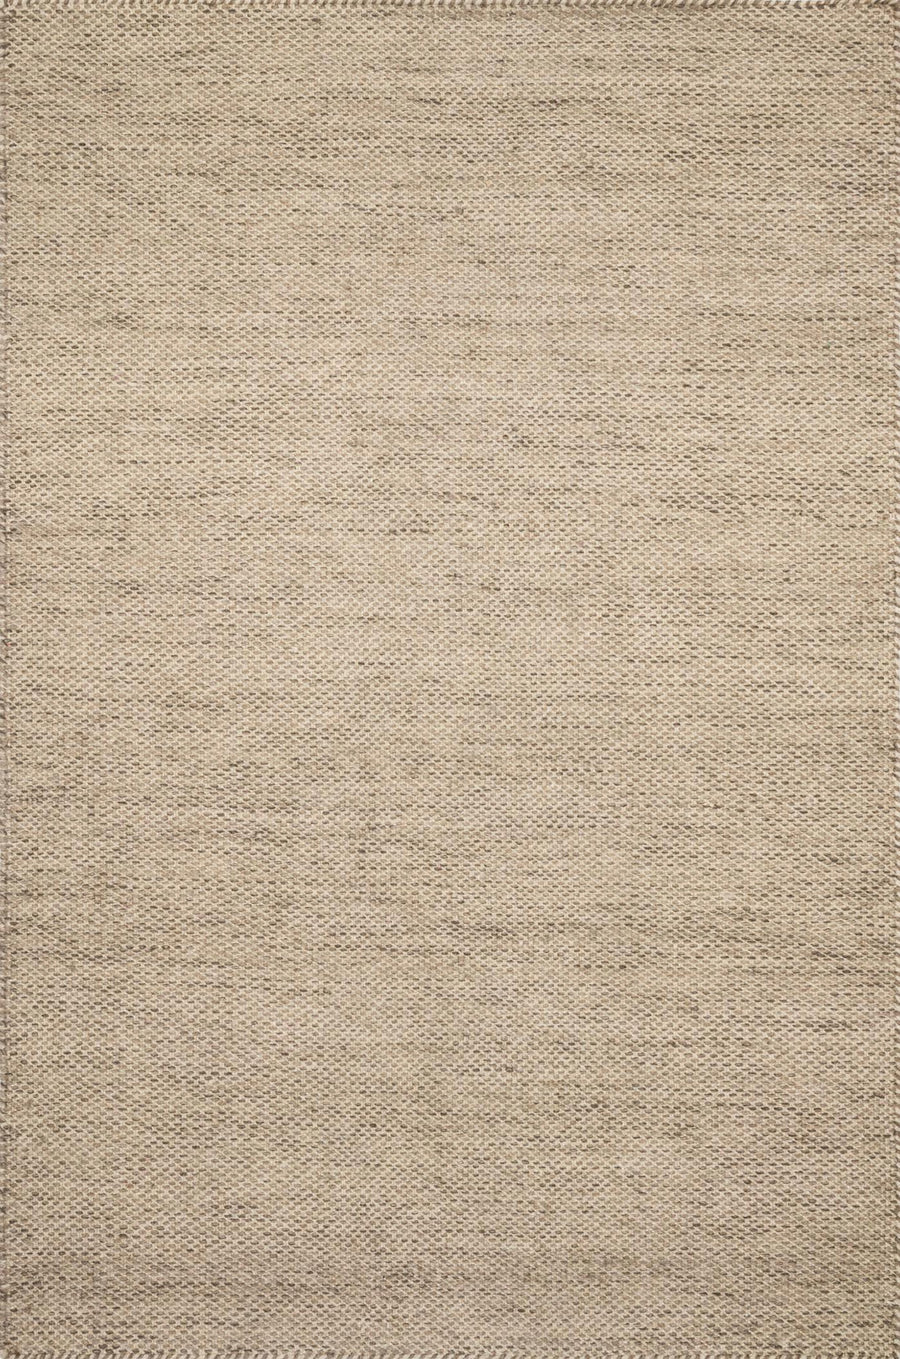 Oakwood Rug - Wheat